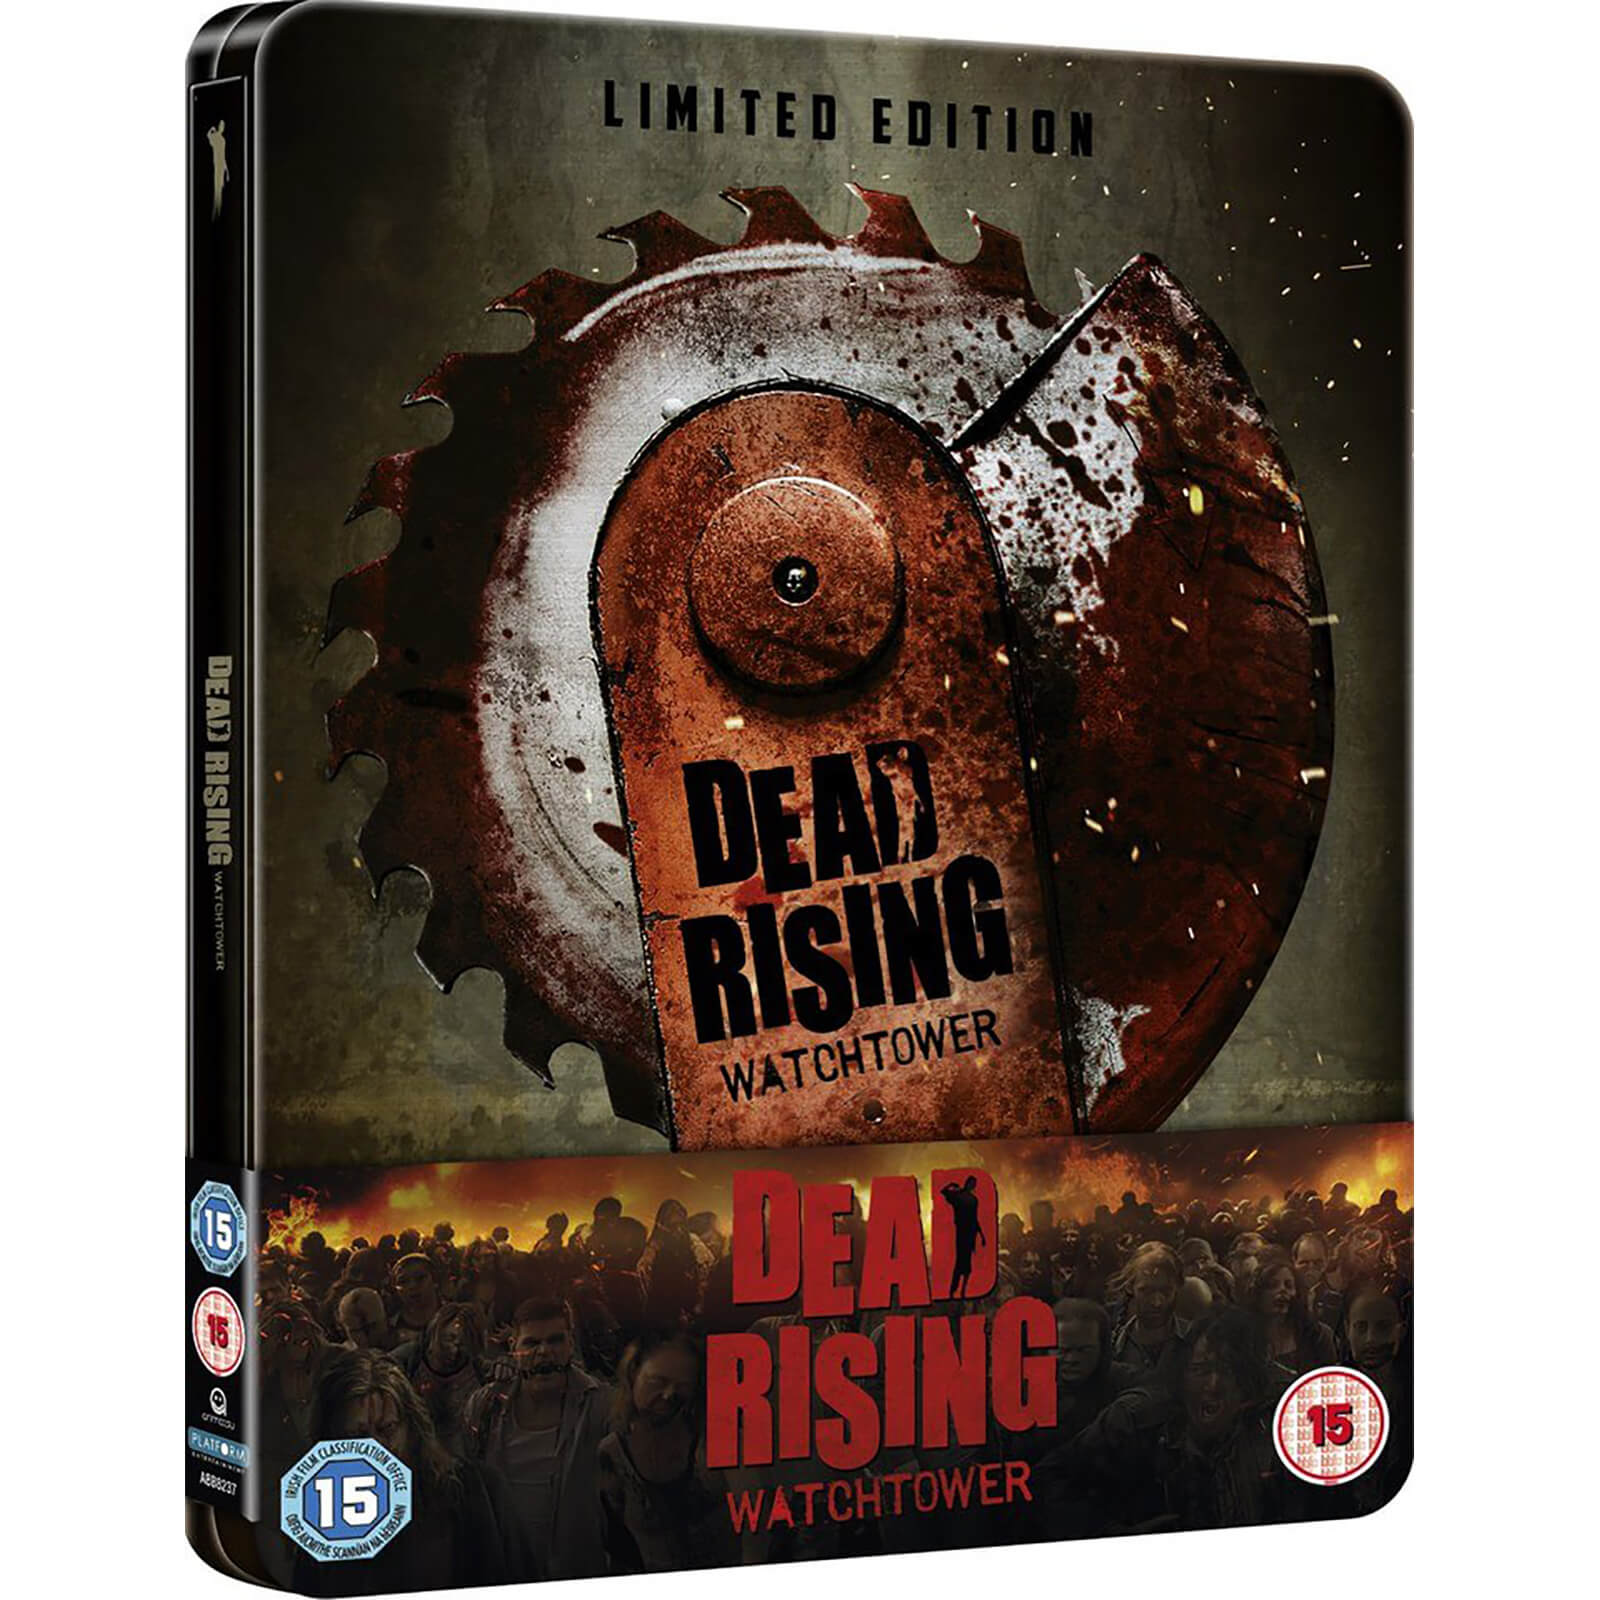 Dead Rising Watchtower Zavvi Uk Exclusive Steelbook Limited To 1000 Units Only Blu Ray Zavvi Us